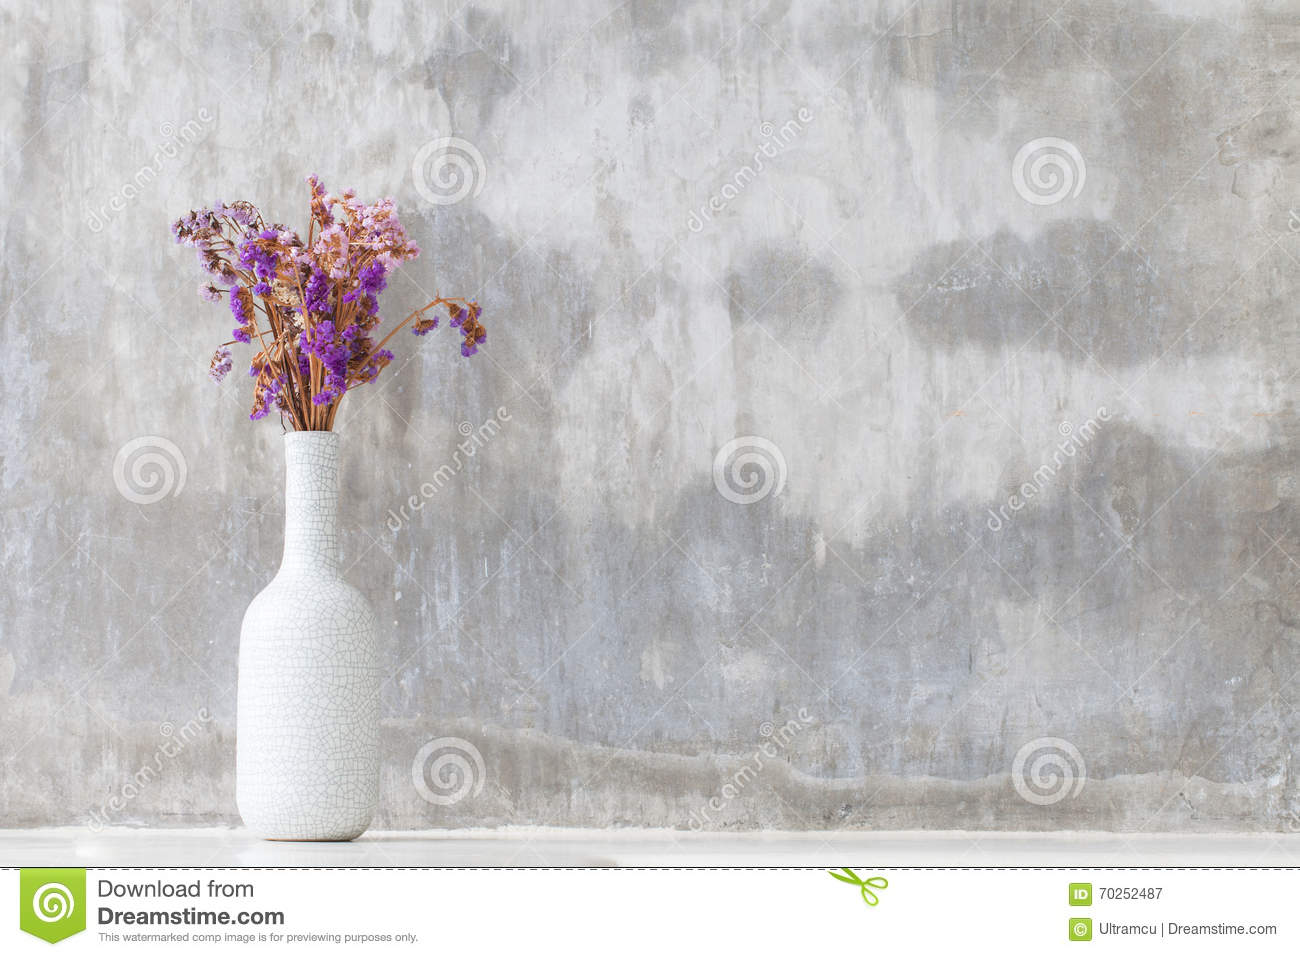 Purple orchid flowers in white vase